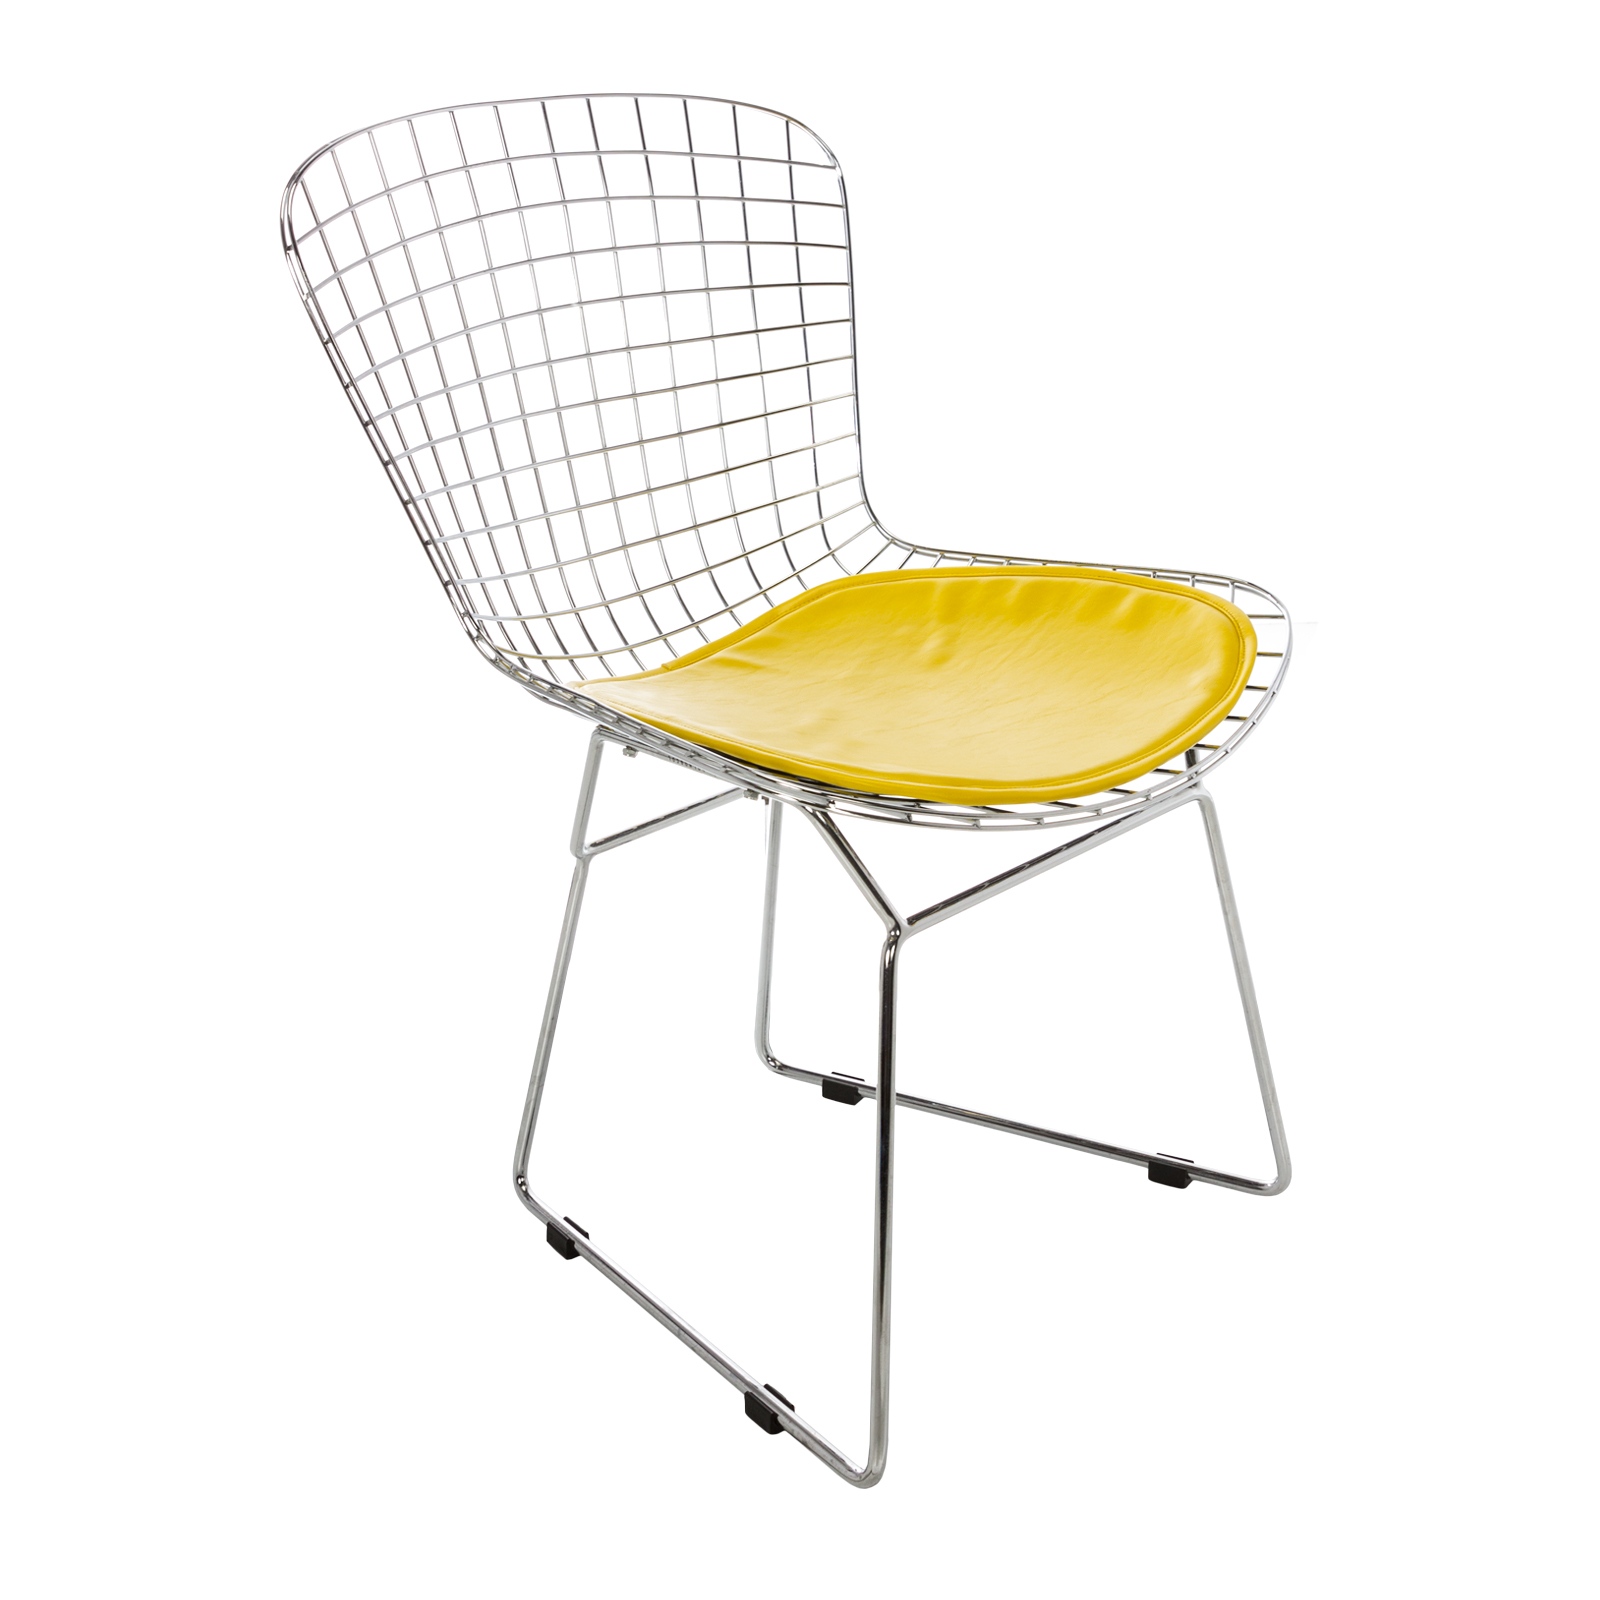 bertoia chair excellent harry with bertoia chair. Black Bedroom Furniture Sets. Home Design Ideas